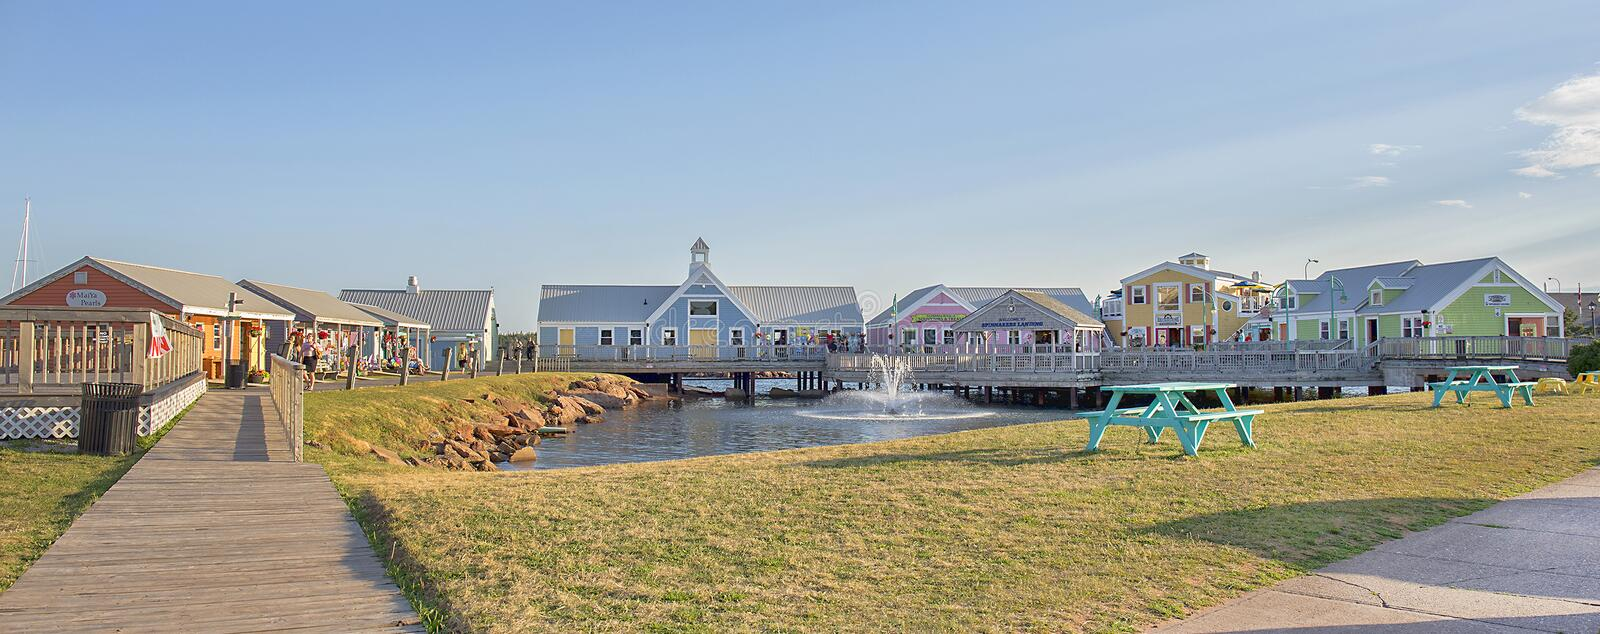 Panorama of Spinnakers Landing in Summerside, PEI. Panorama of Spinnakers Landing in Summerside, Prince Edward Island, Canada With retail shops and restaurants stock photo